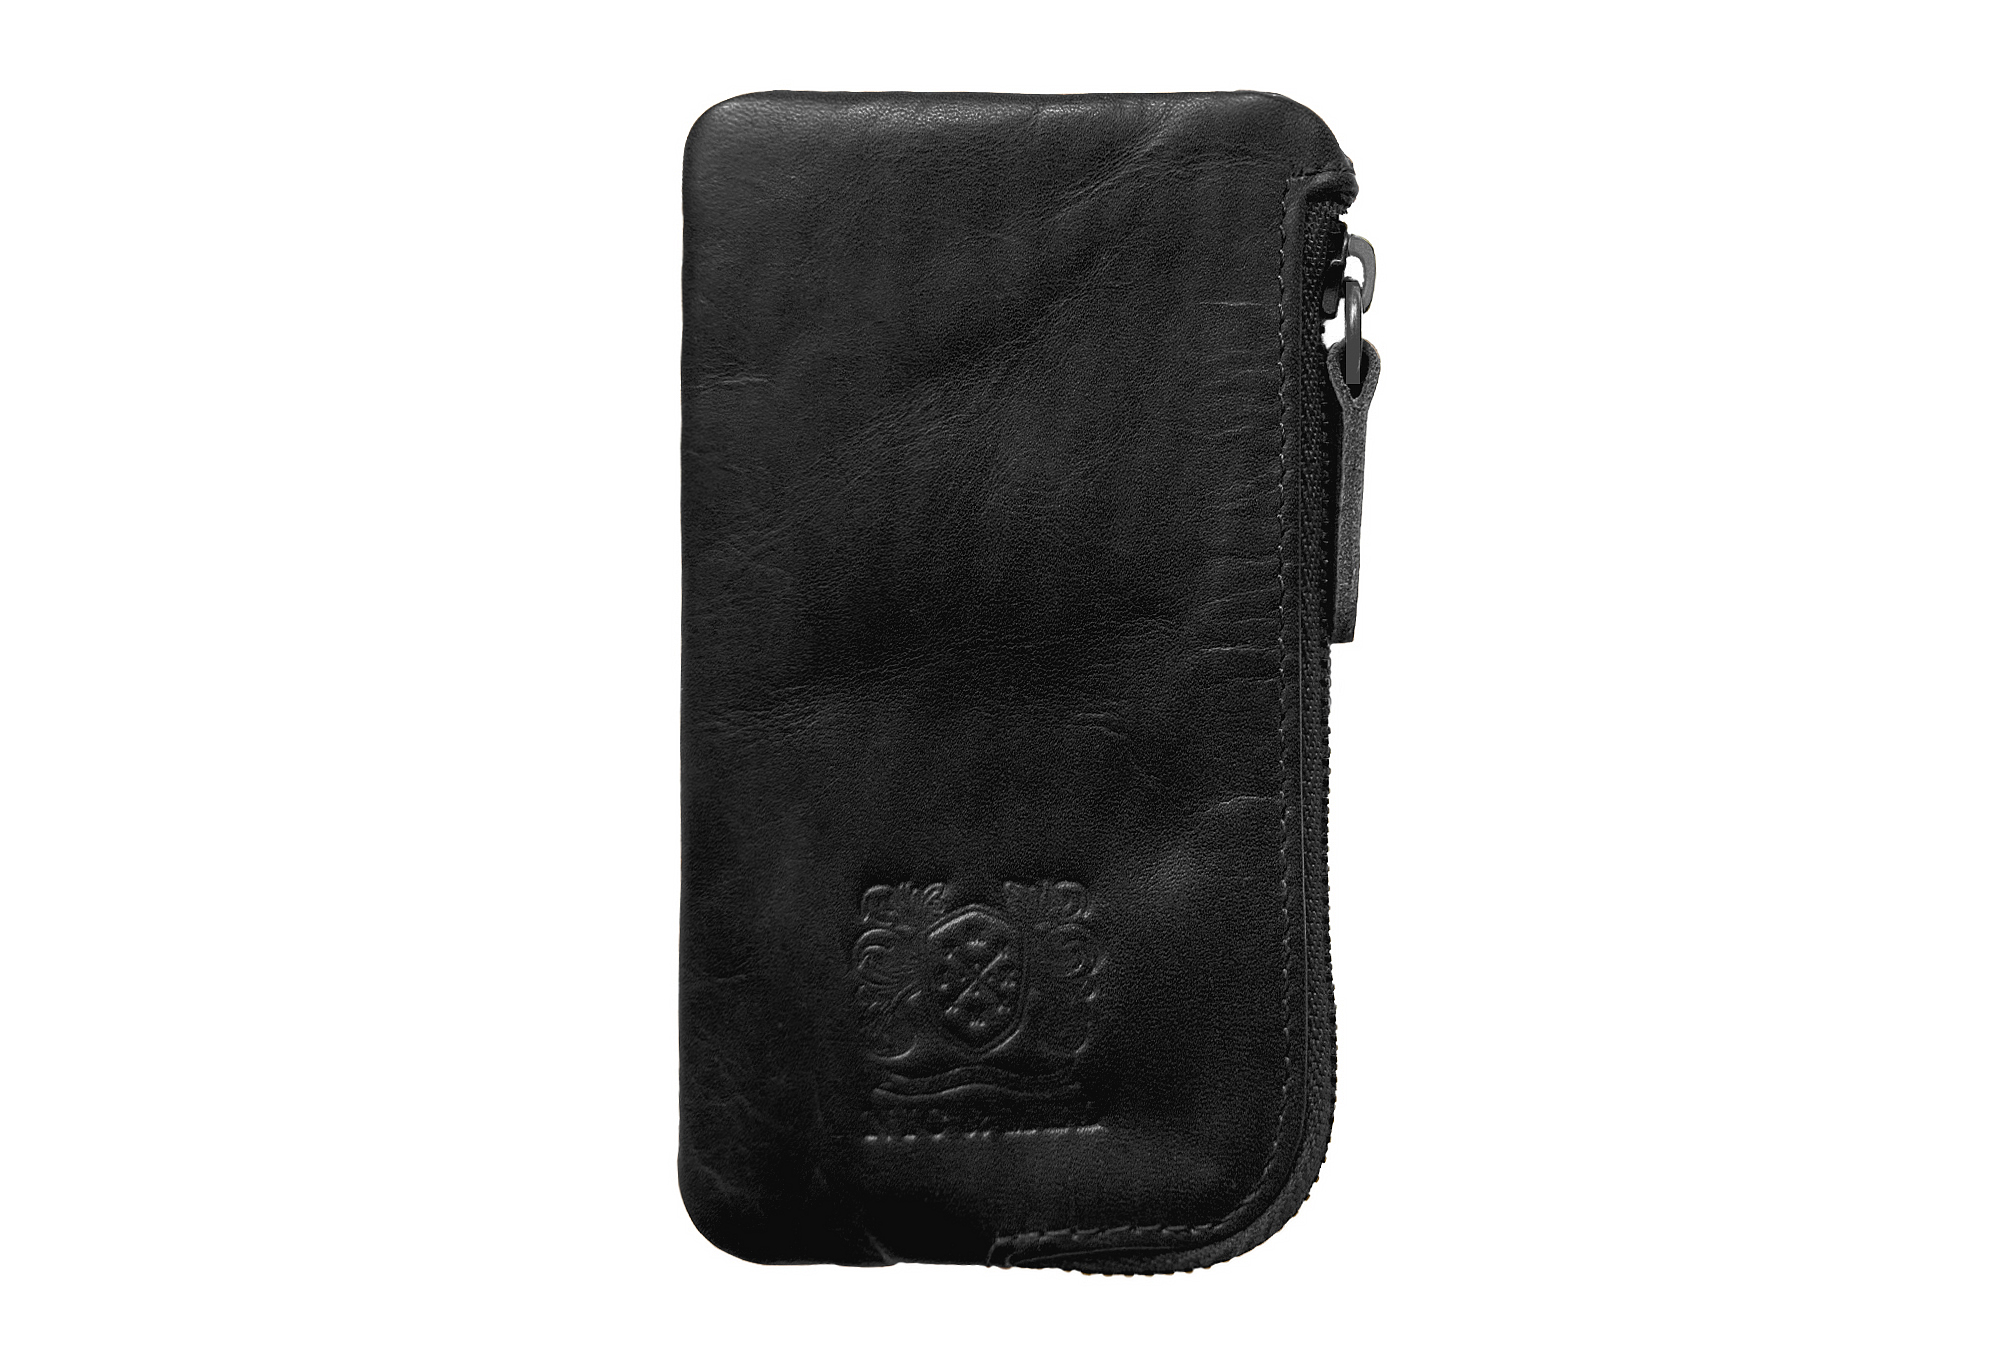 ACE CARD WALLET <br>Black Leather